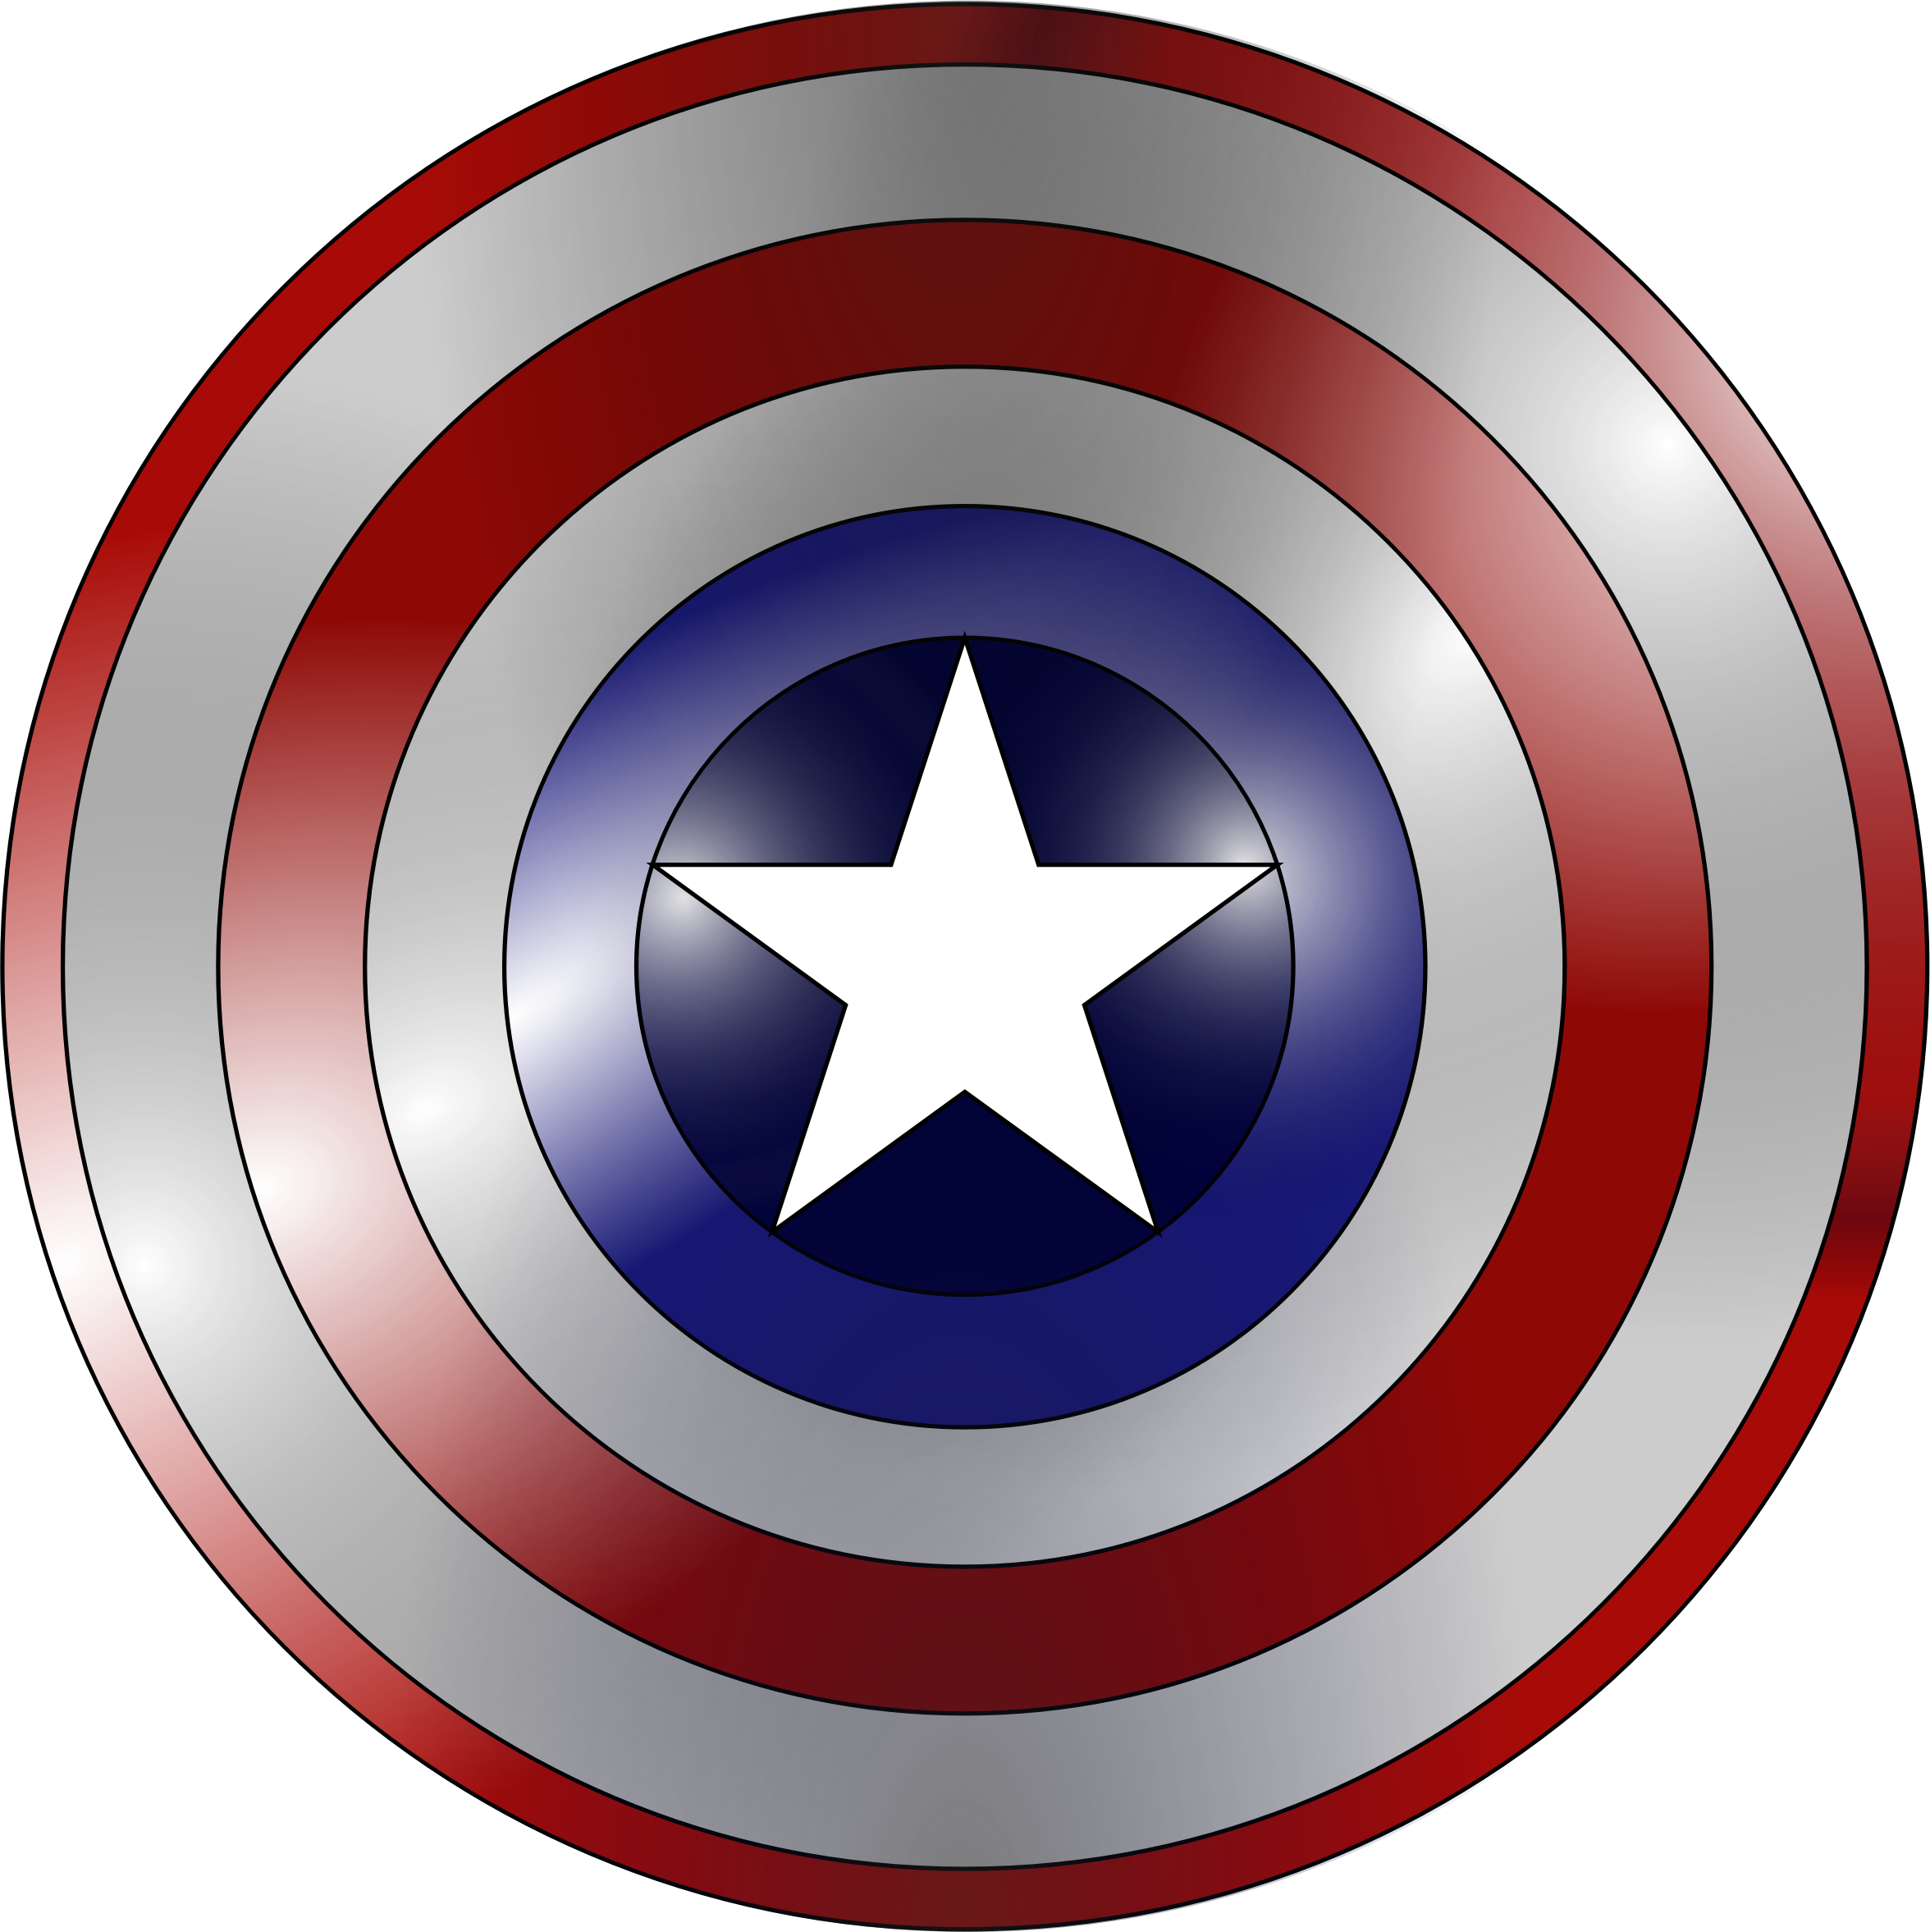 Captain america shield .png. Metal base icons png